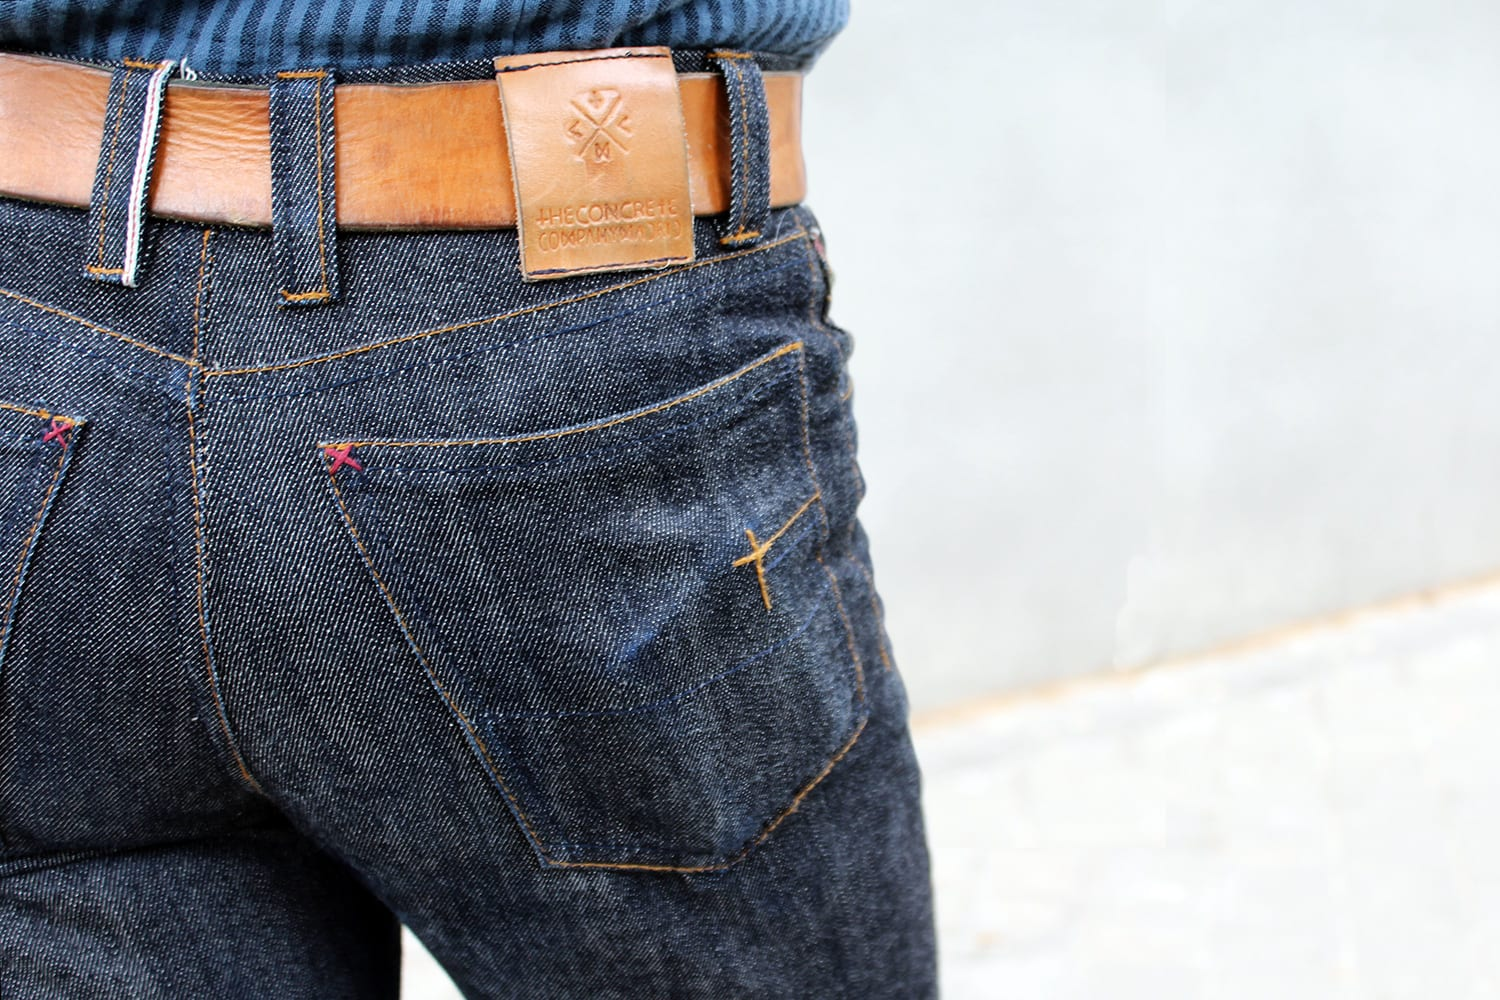 Artisan Challenge second place TheConcrete faded raw denim jeans